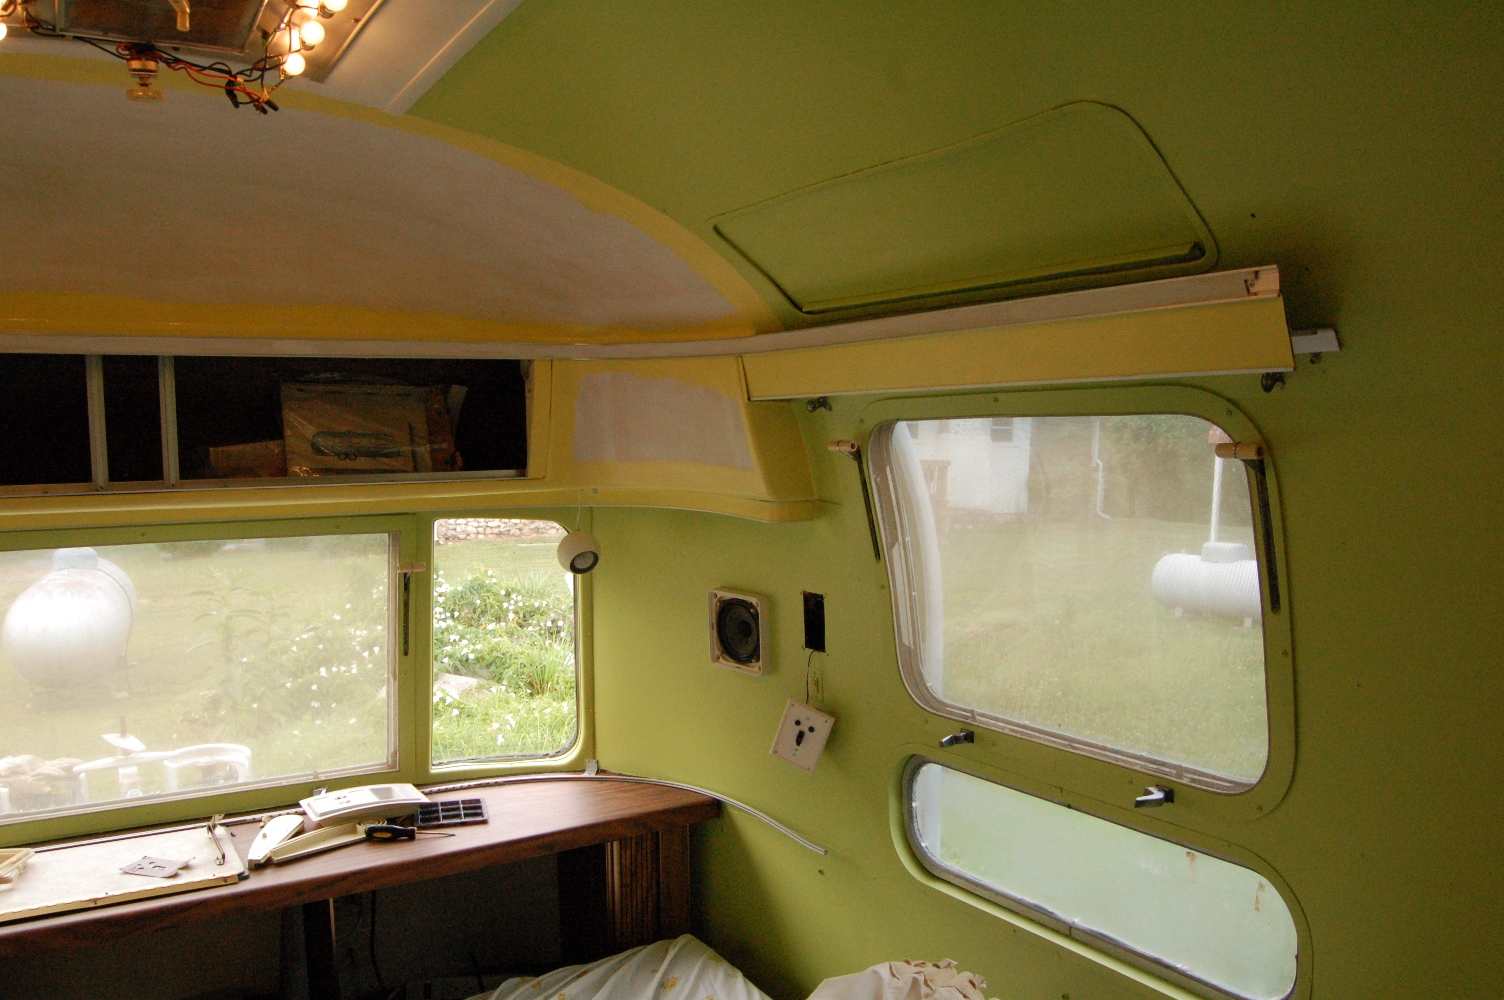 Click image for larger version  Name:Airstream Inside 003_small.jpg Views:68 Size:718.1 KB ID:82855